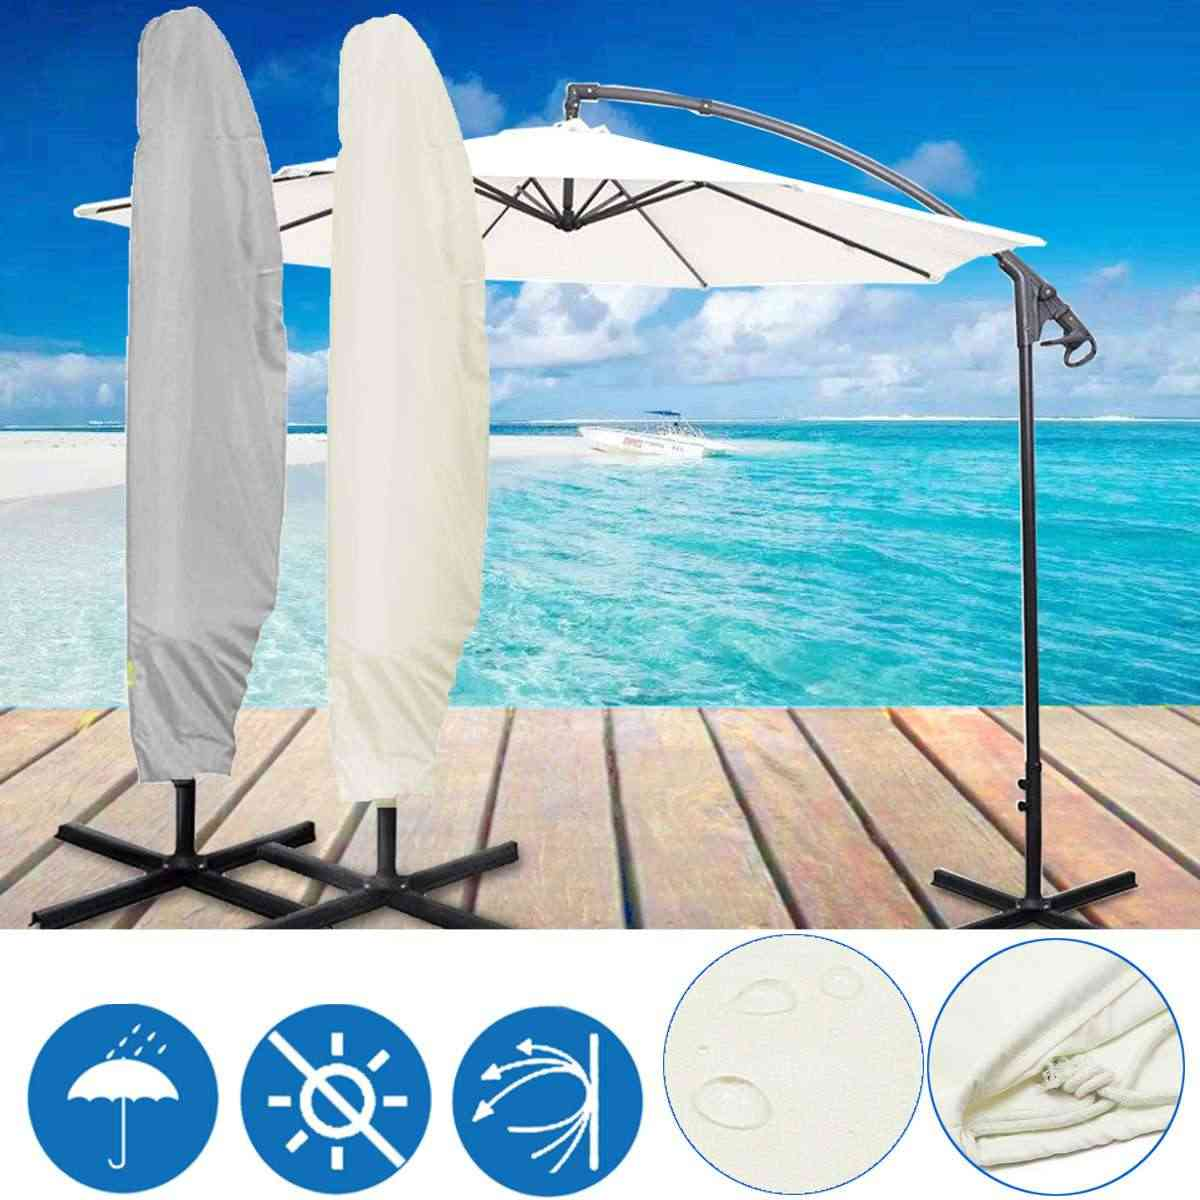 265cm 30X81X46cm Outdoor Banana Umbrella Cover Garden Patio Cantilever Parasol Protective Cover With Zipper Waterproof Dustproof